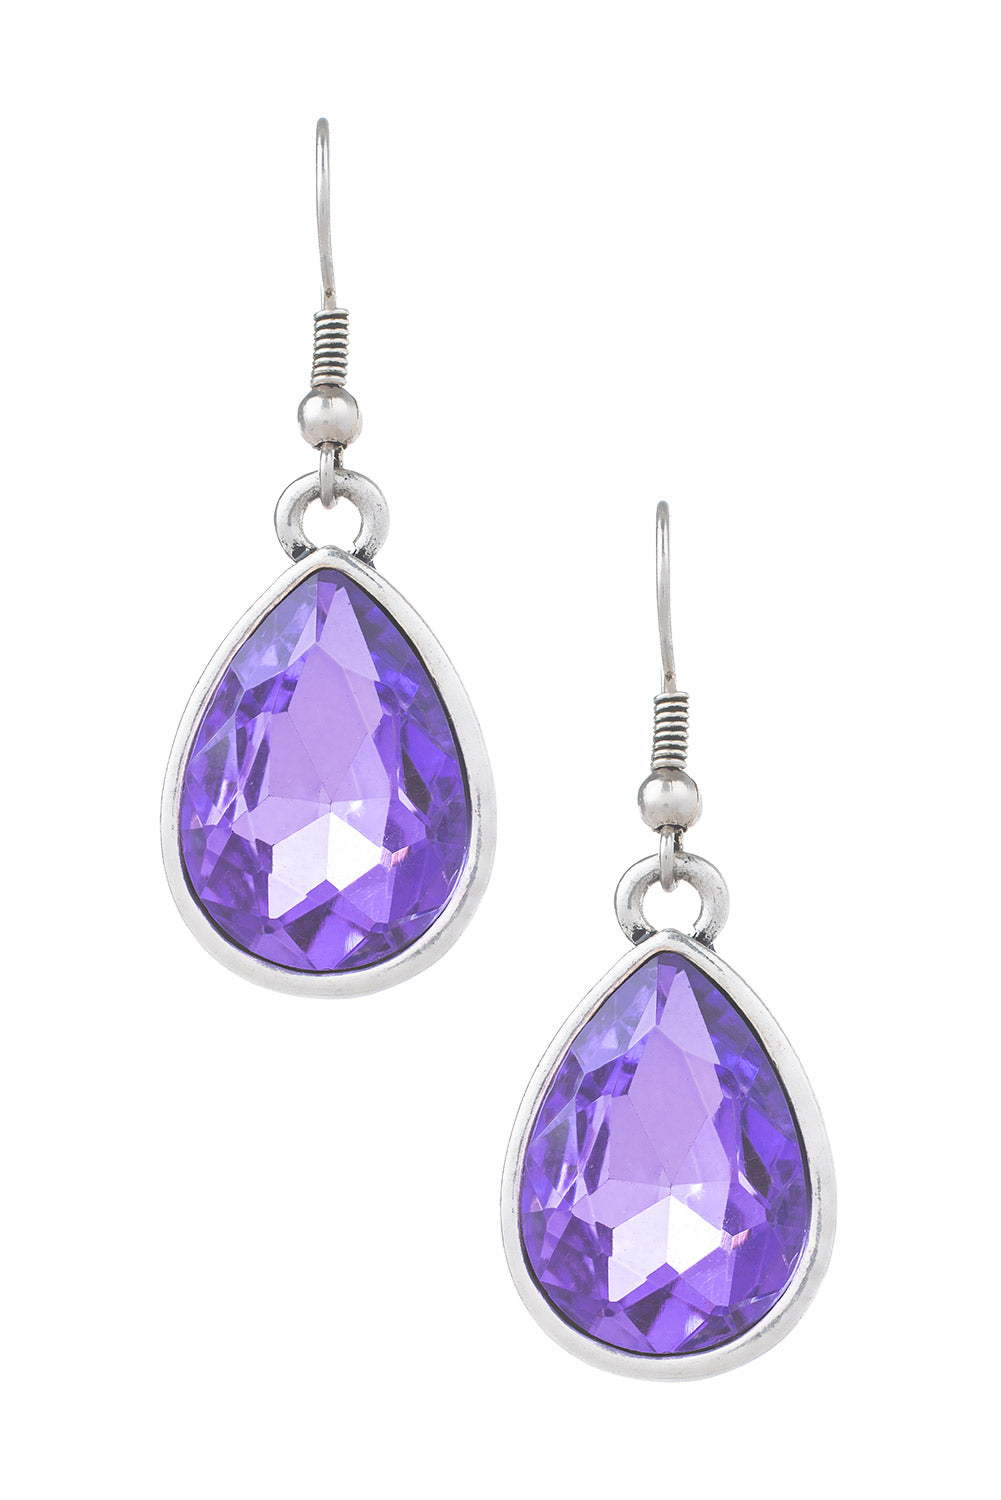 Type 4 Amethyst Teardrops Earrings